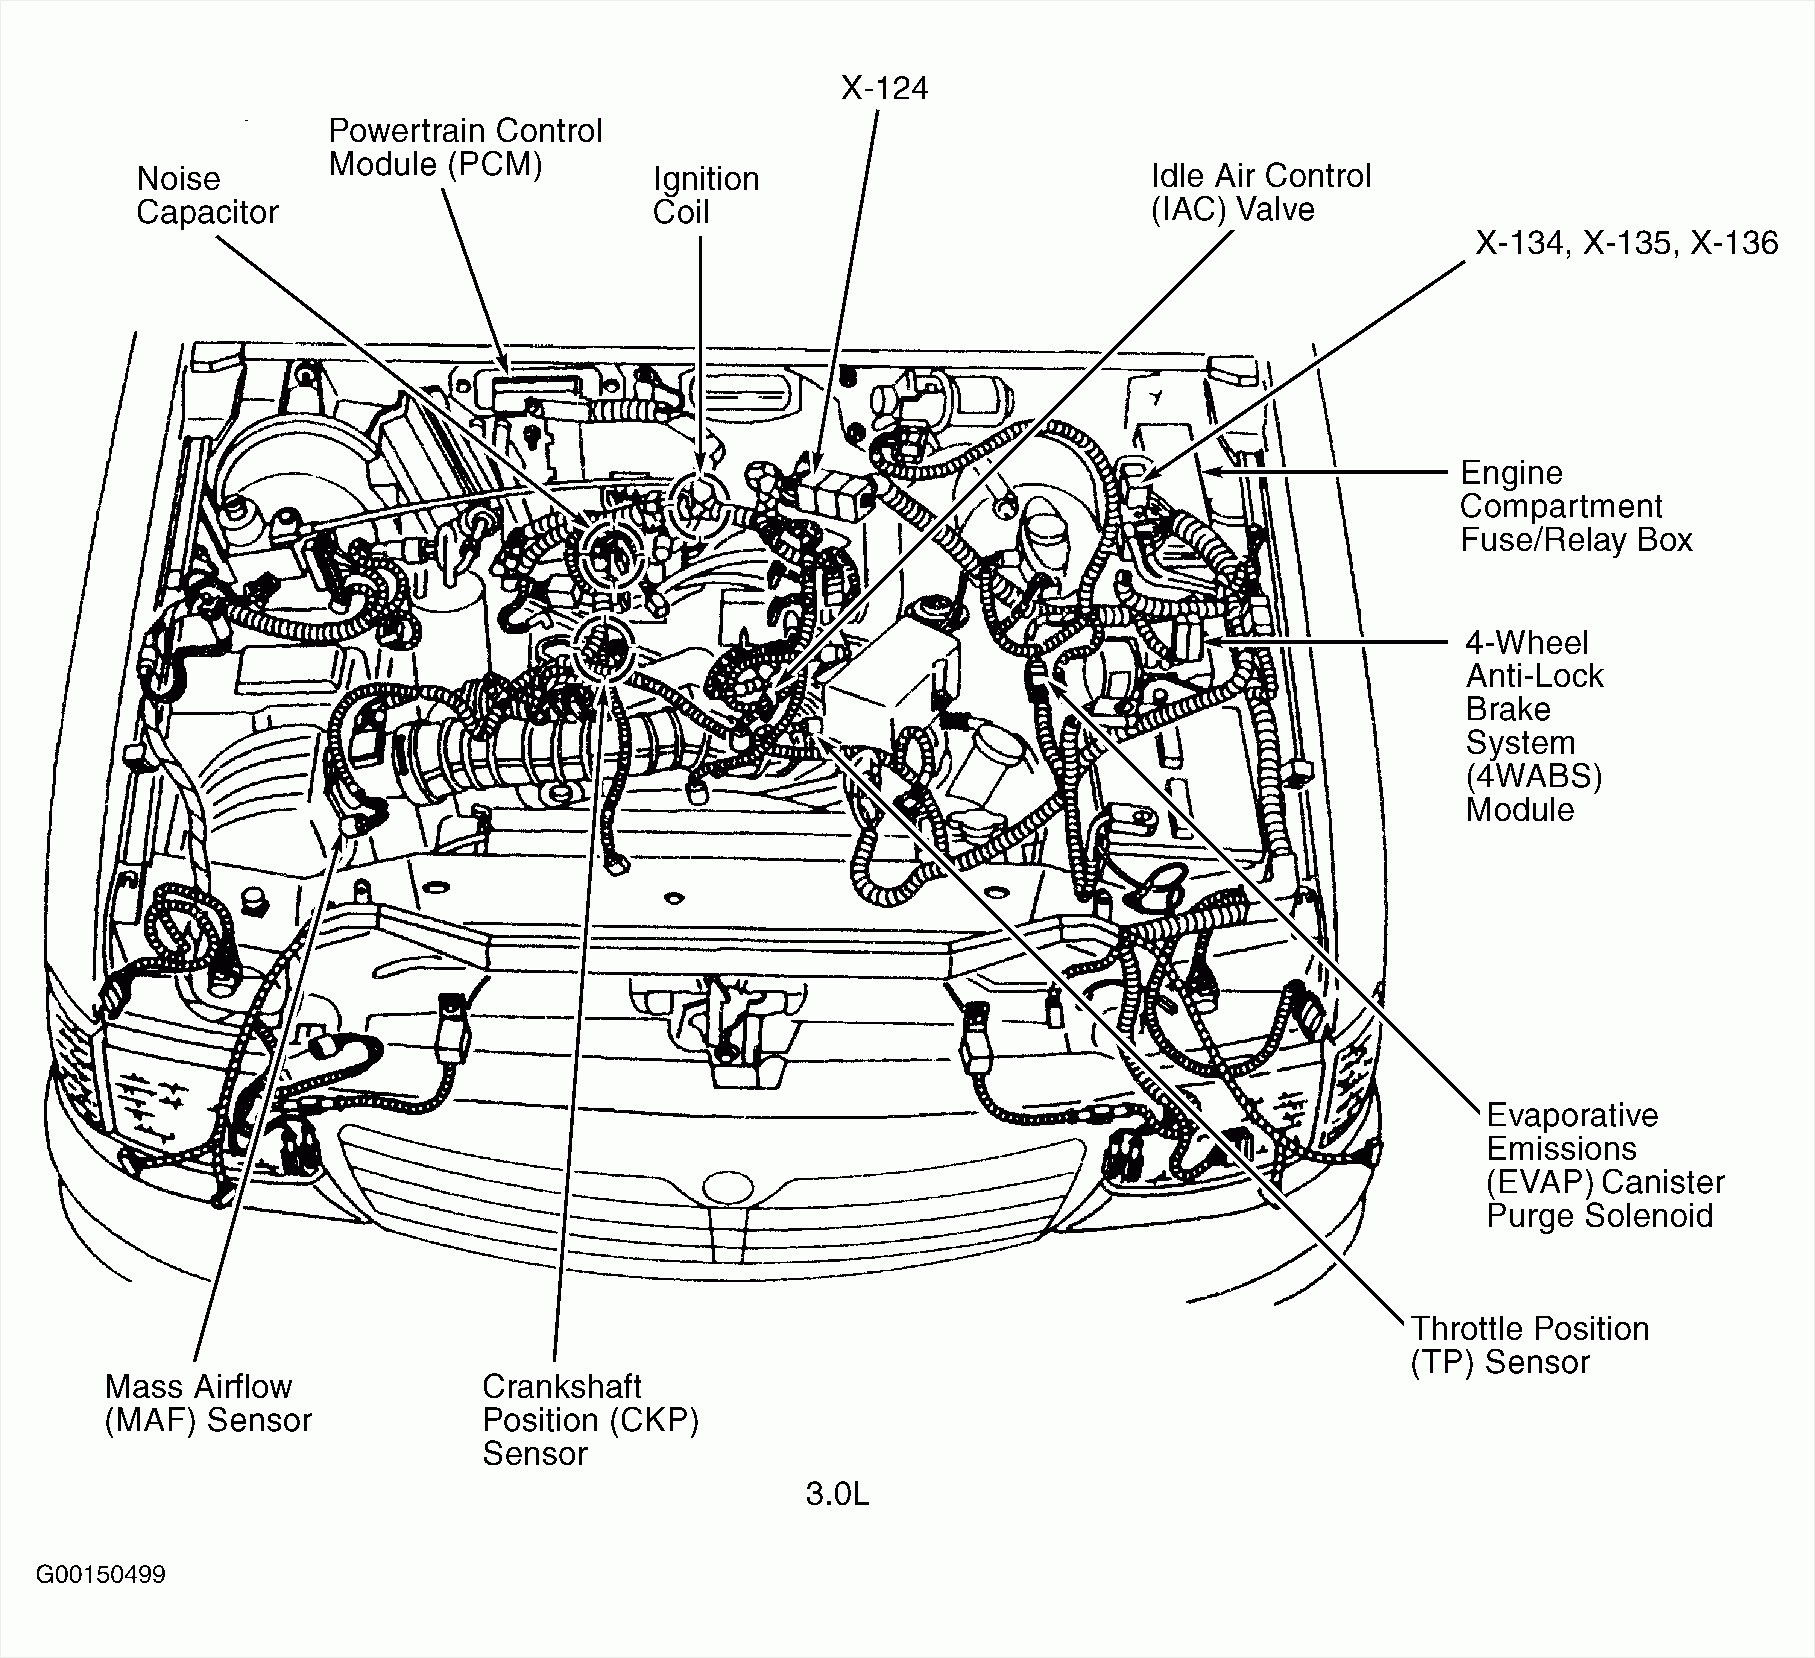 Saturn V6 Engine Diagram Free Wiring For You 2003 Vue 2002 Cooling System Library Rh 69 Codingcommunity De 2005 L300